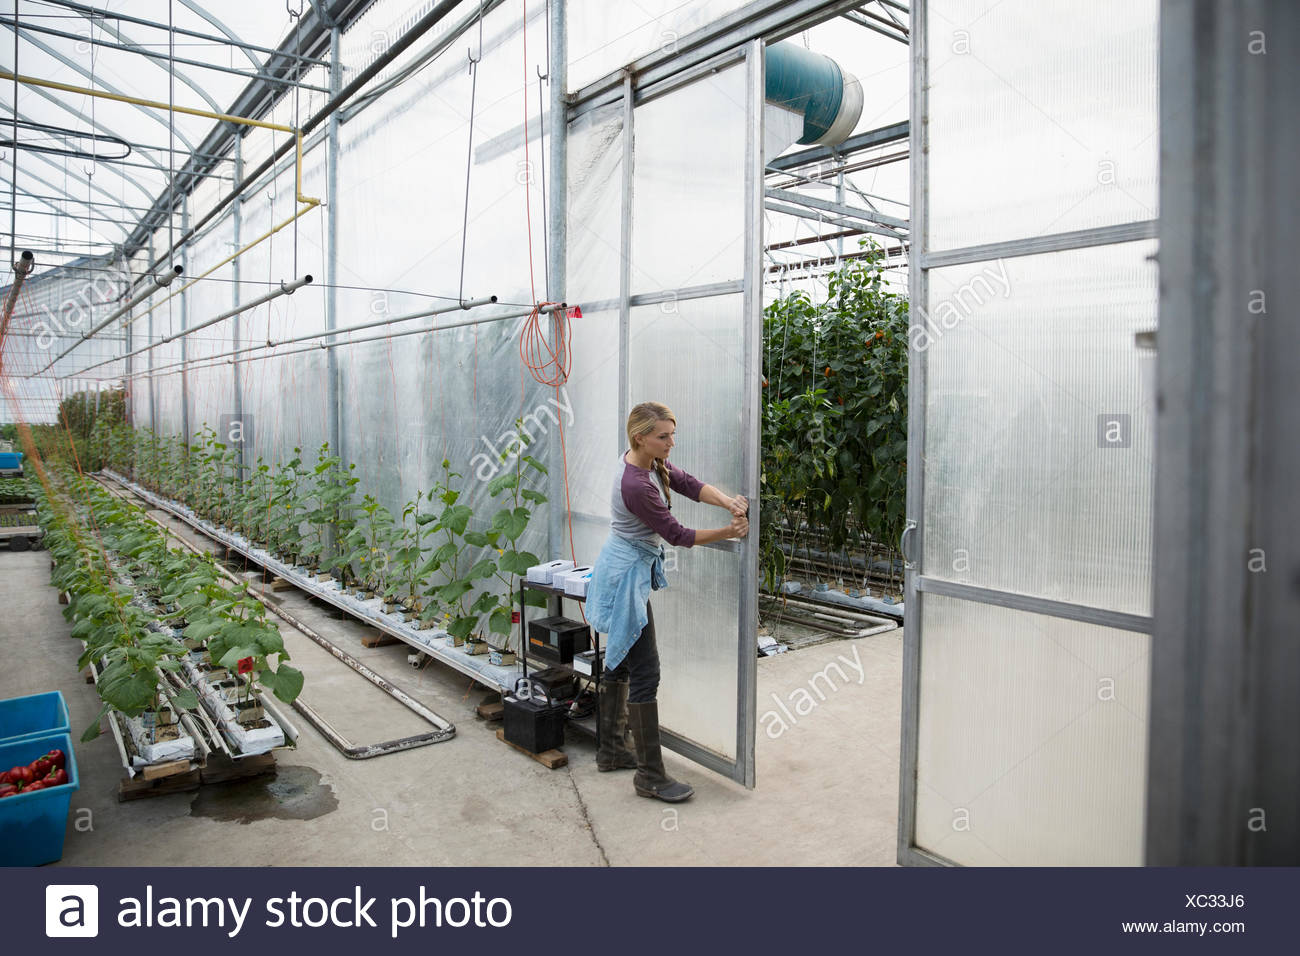 Female farmer opening greenhouse door - Stock Image